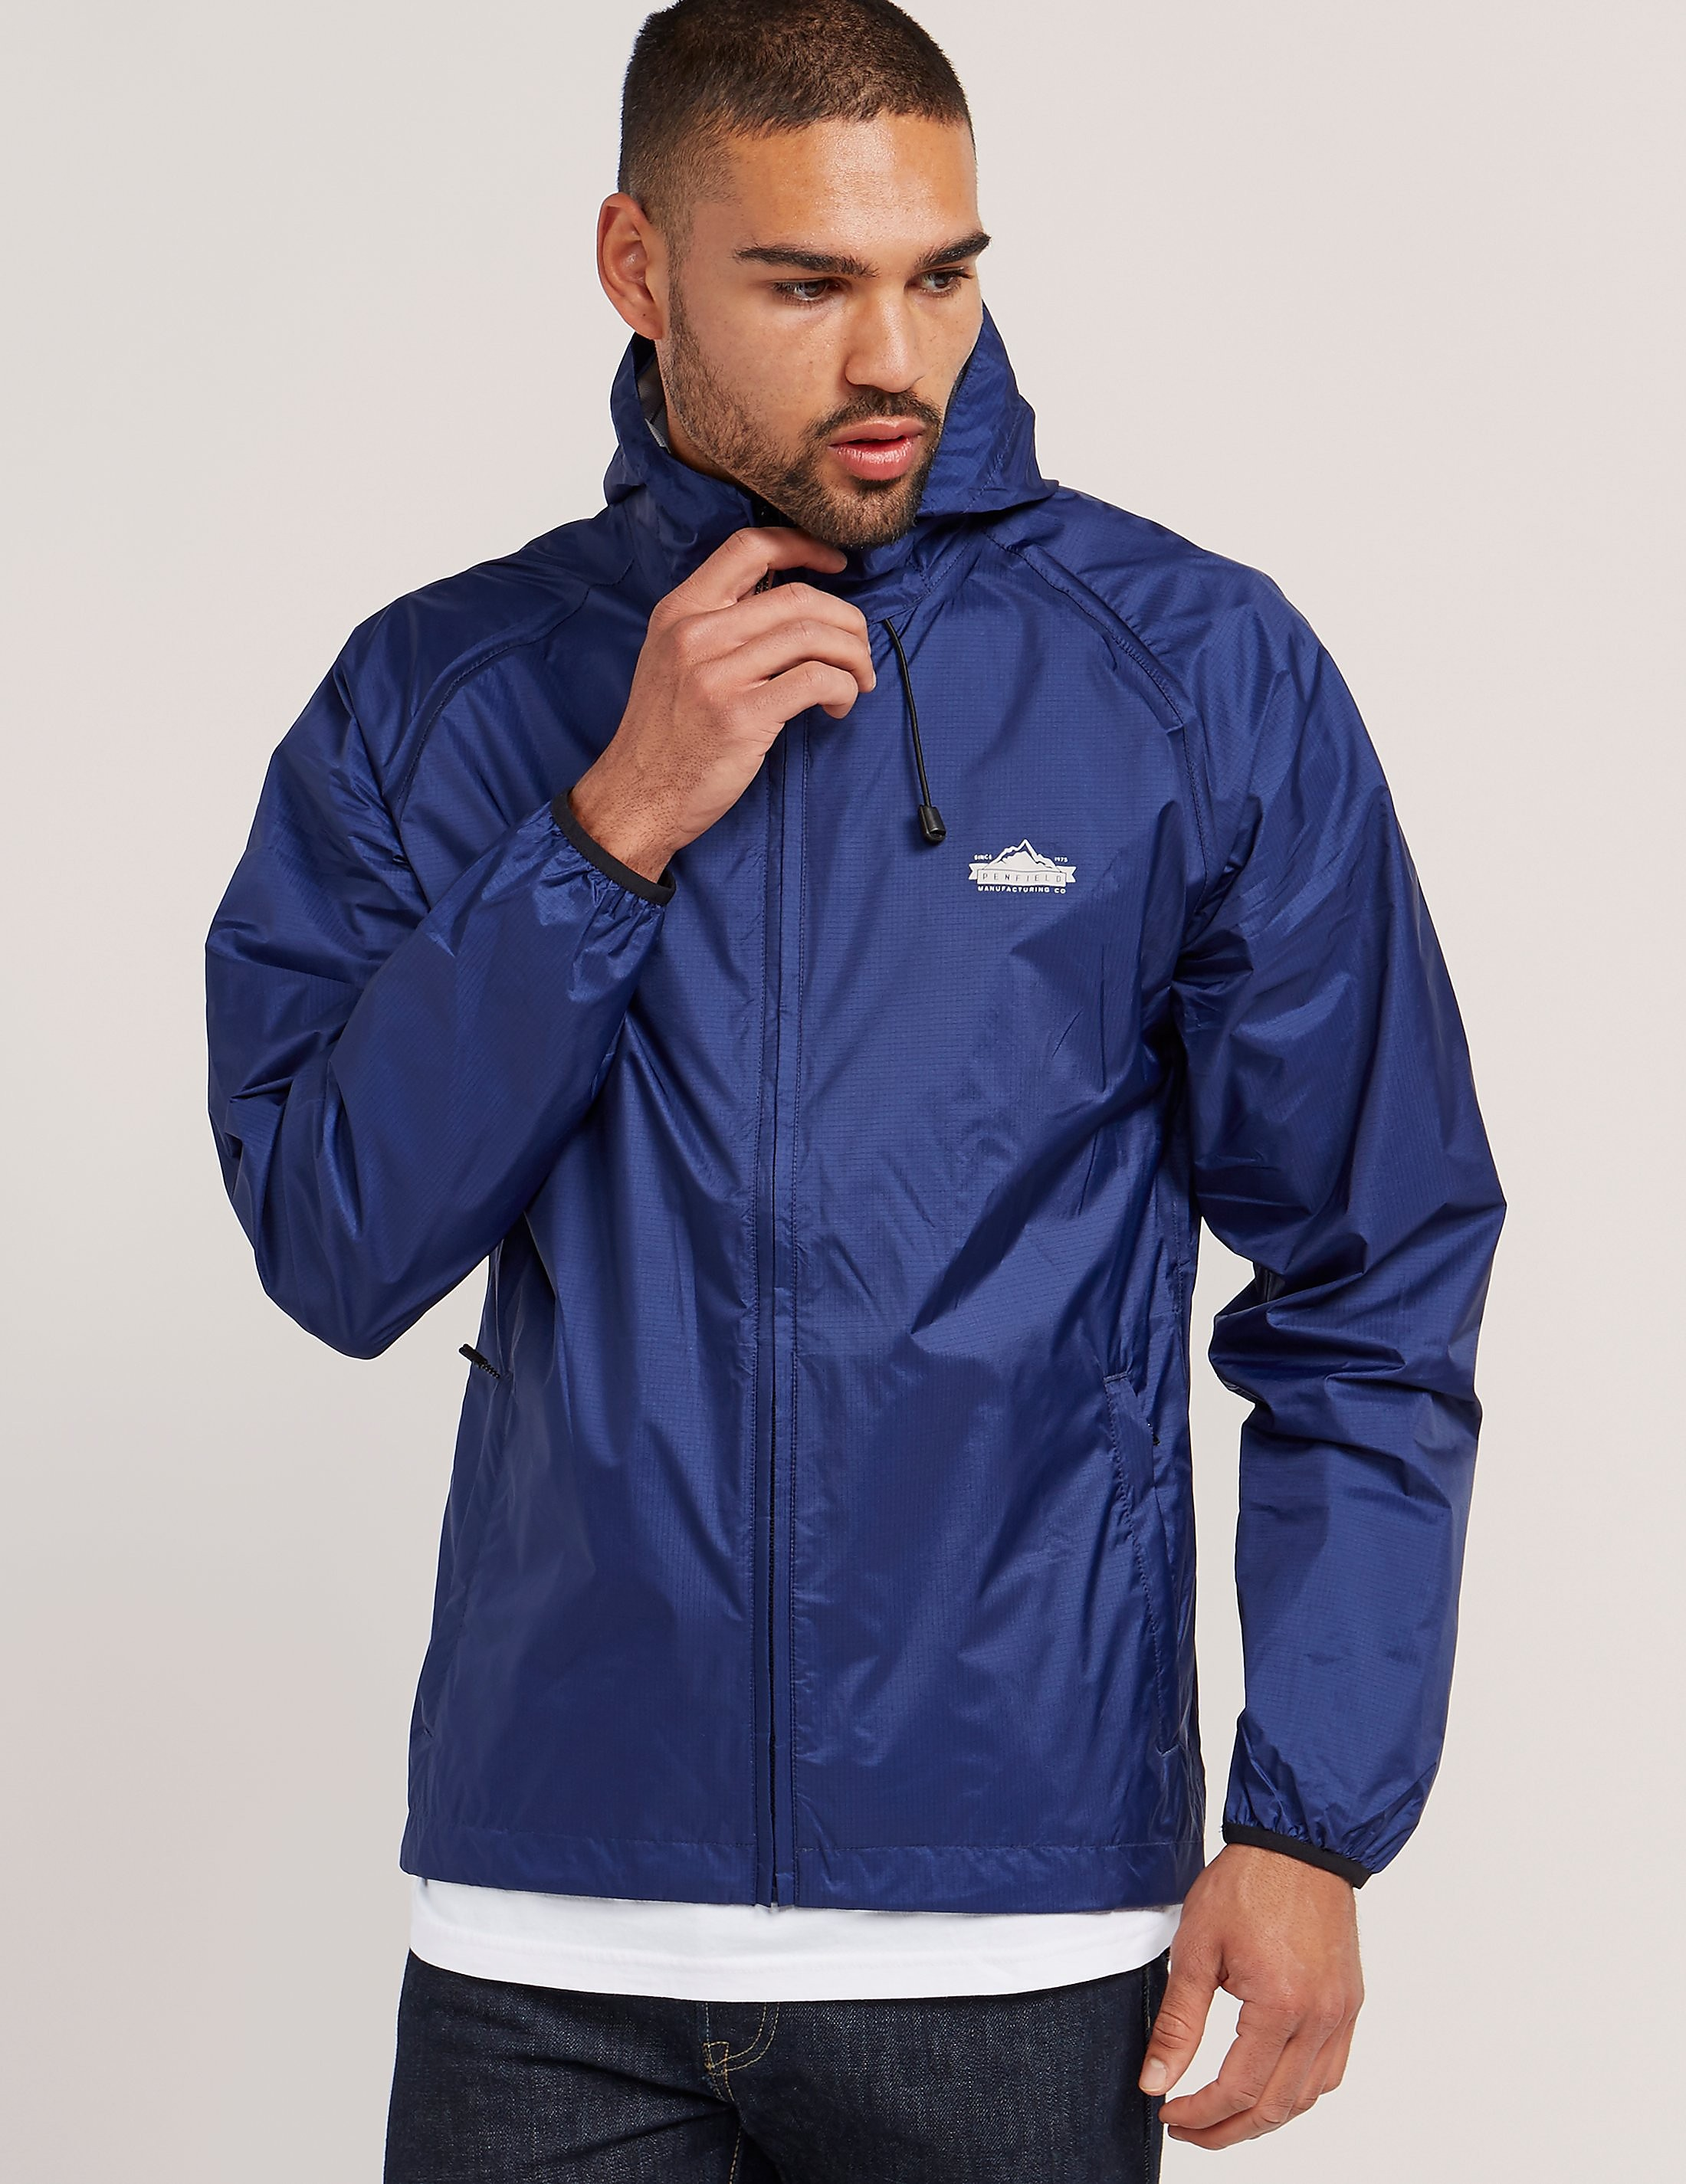 Penfield Travelshell Lightweight Jacket